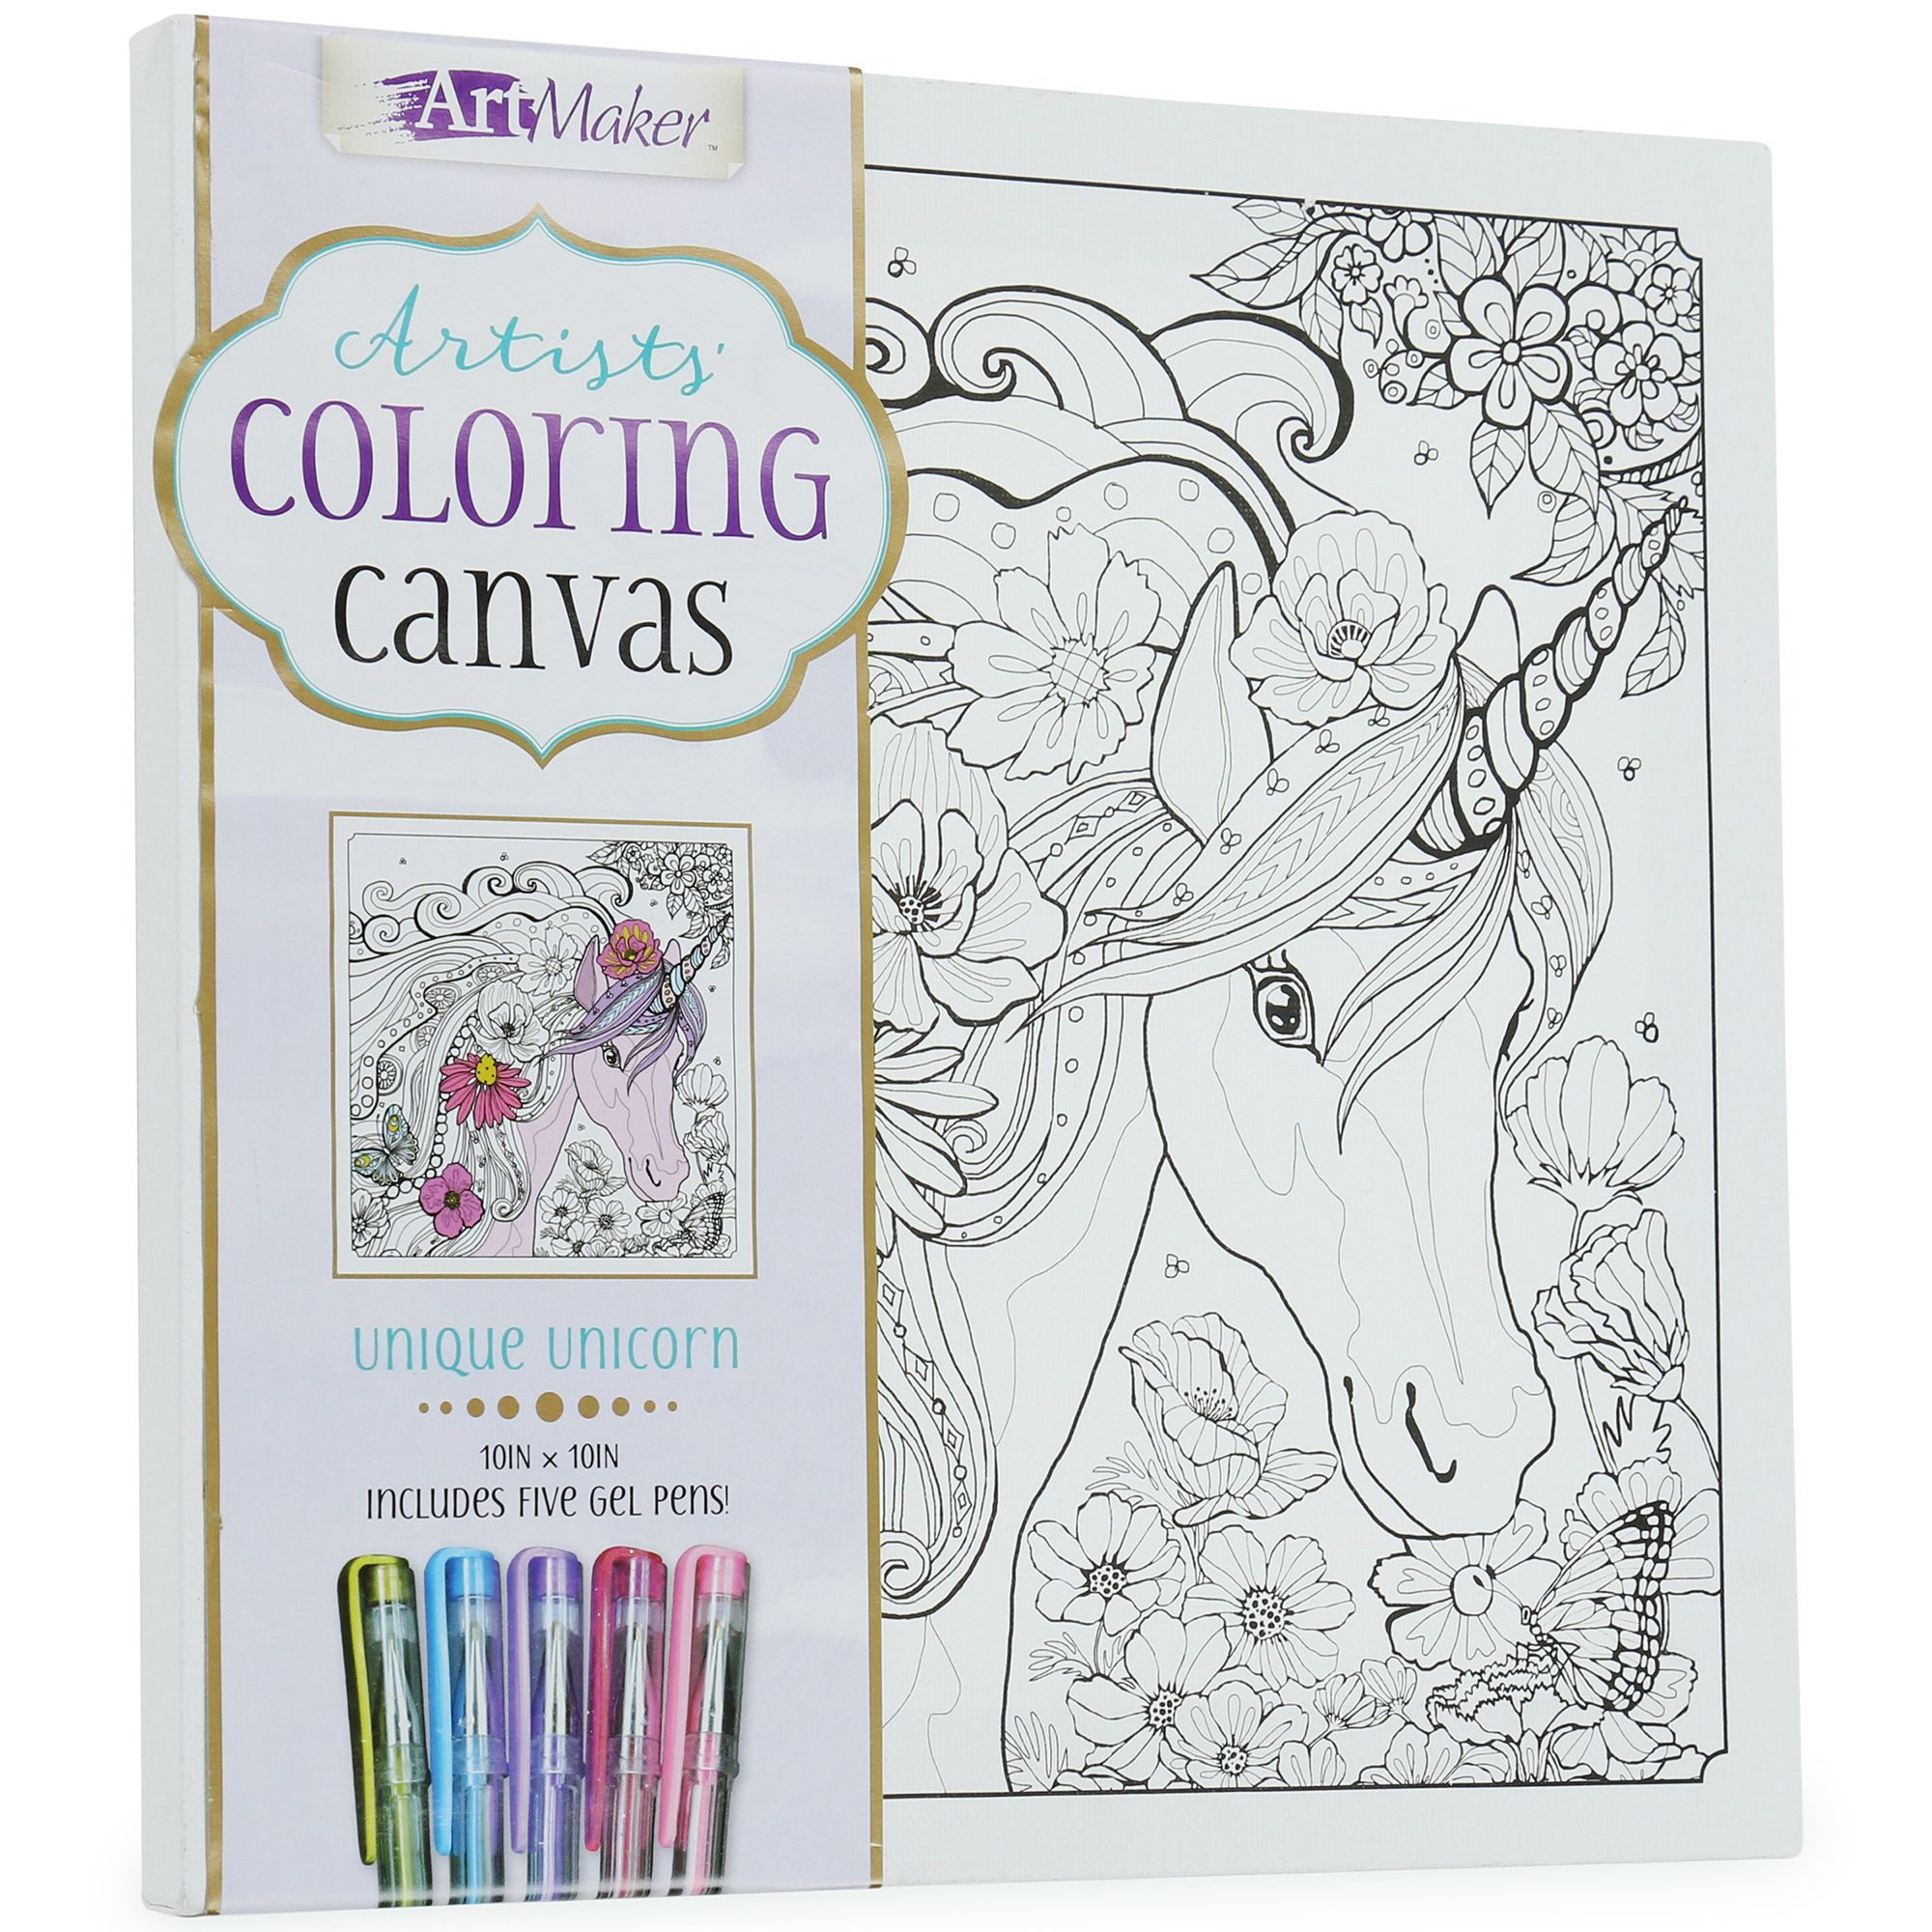 Artists Coloring Canvas With 5 Gel Pens 10in X 10in Five Below Coloring Canvas Gel Pens Cool Wall Art